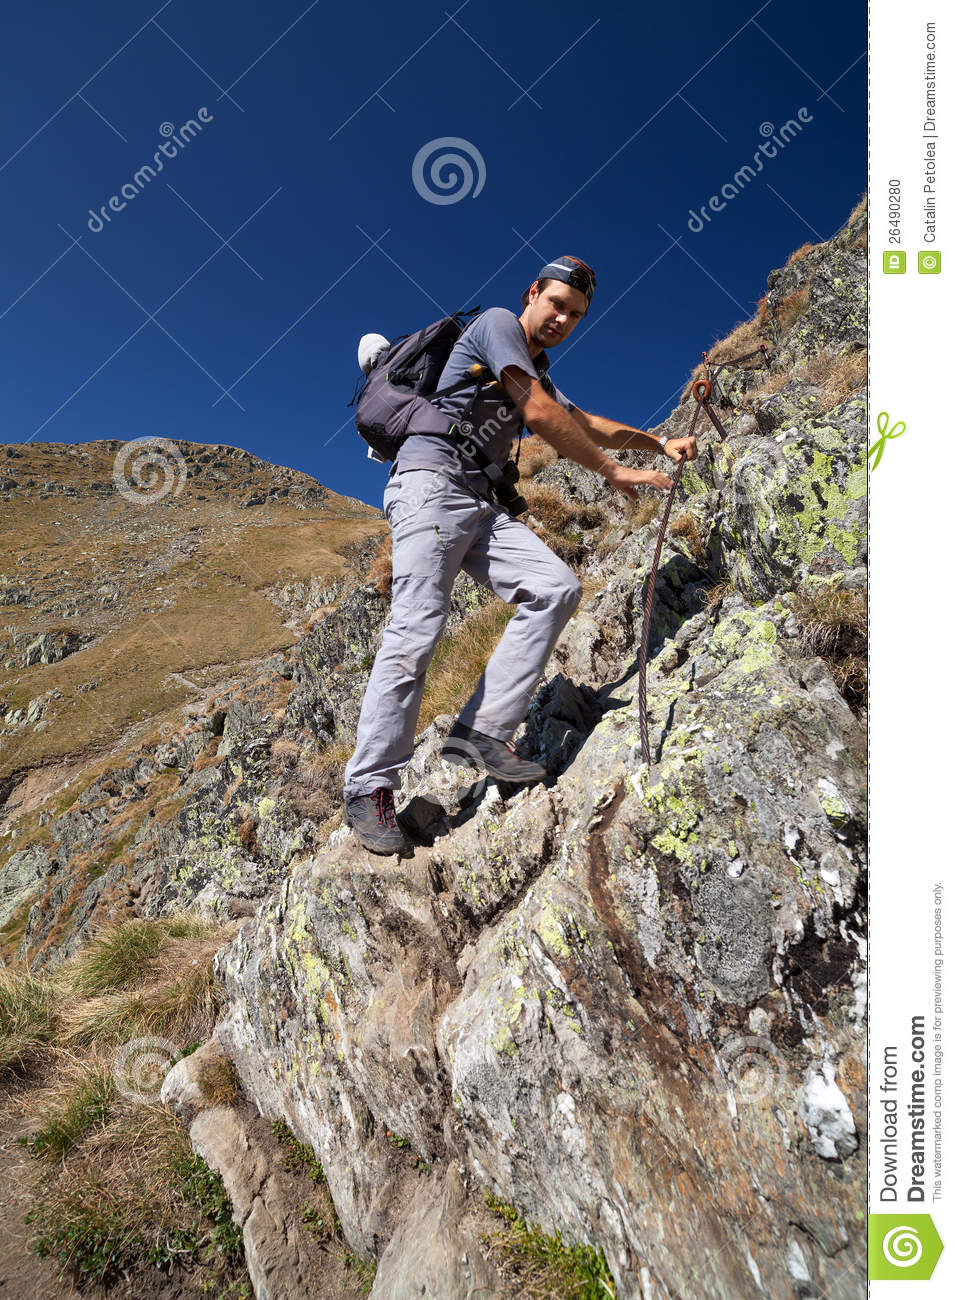 Man Hiking On Difficult Mountain Trail Stock Photo   Image  26490280